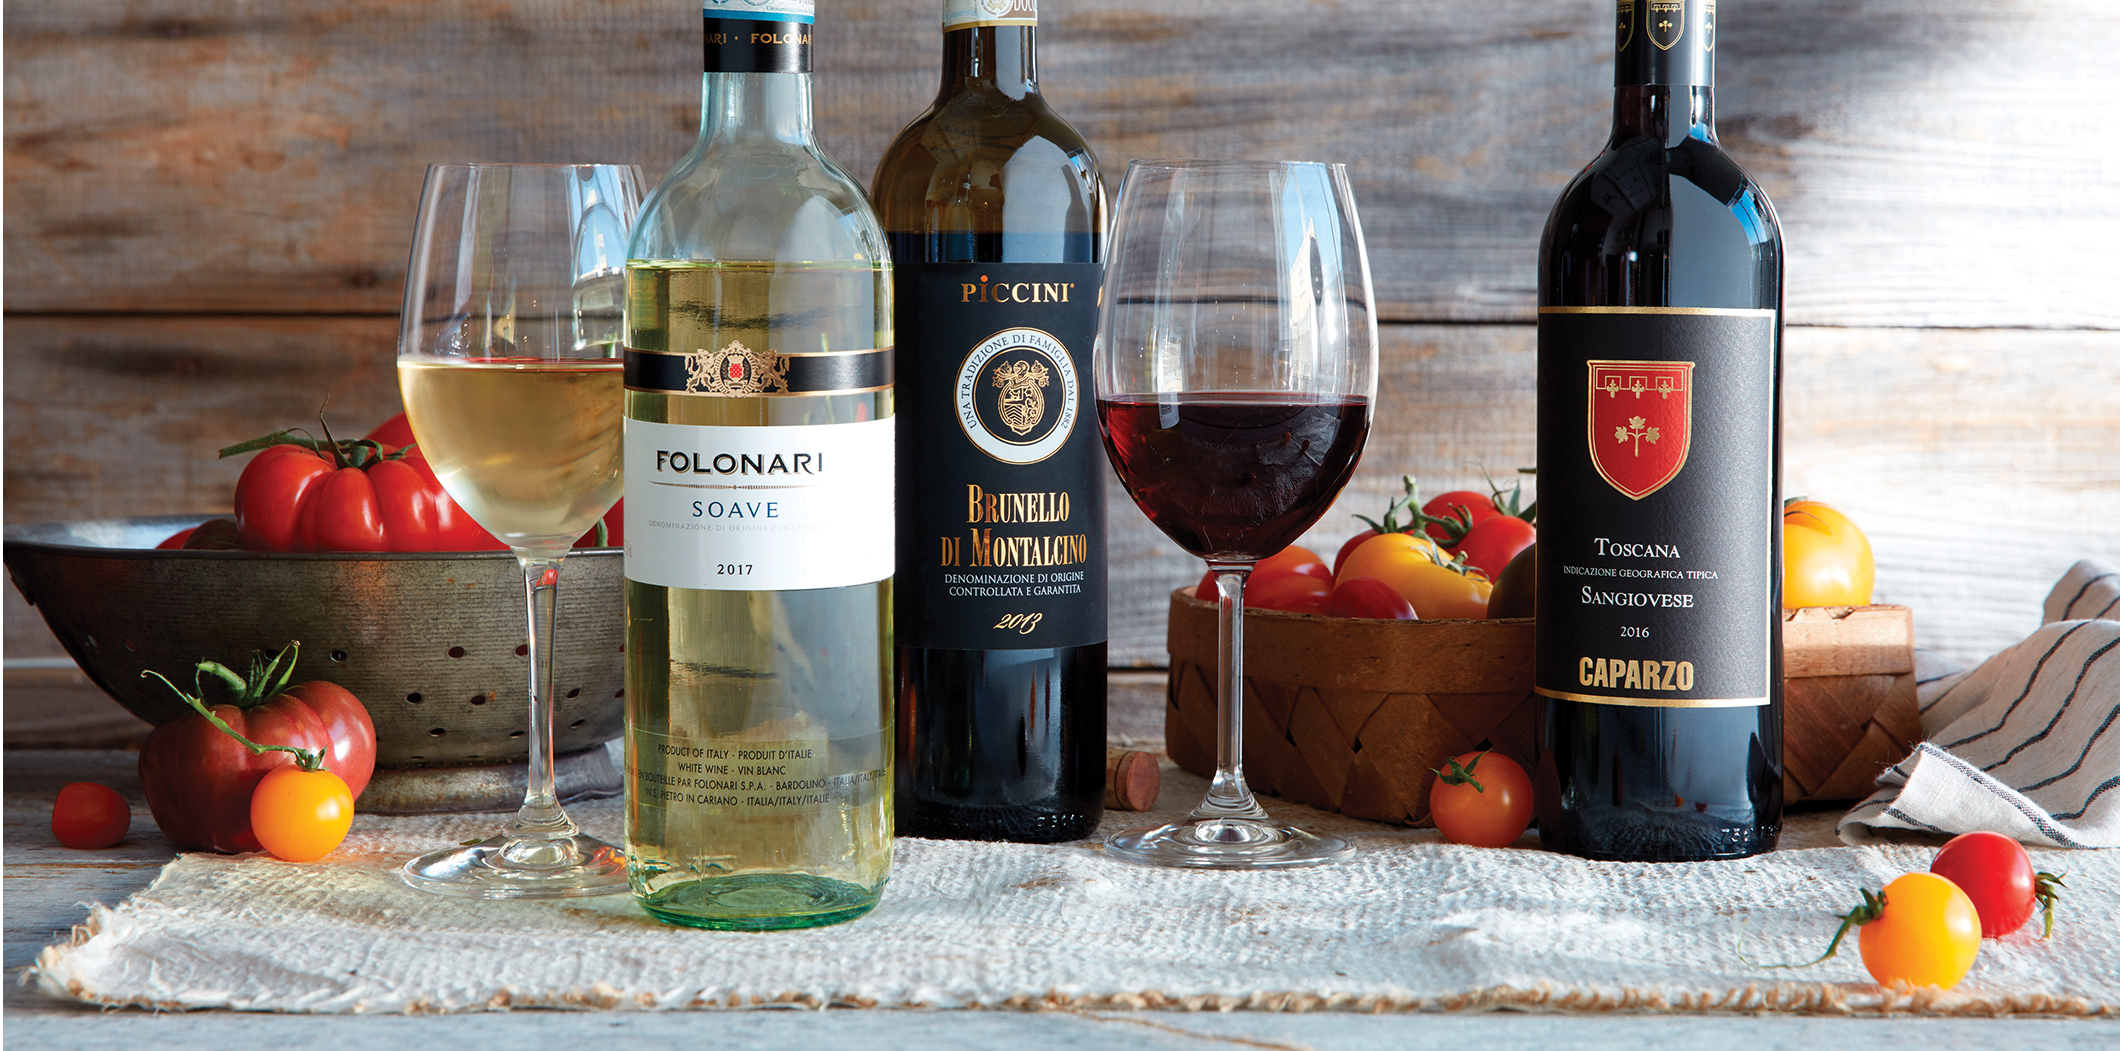 The Basic Rules for Pairing Wine with Tomatoes